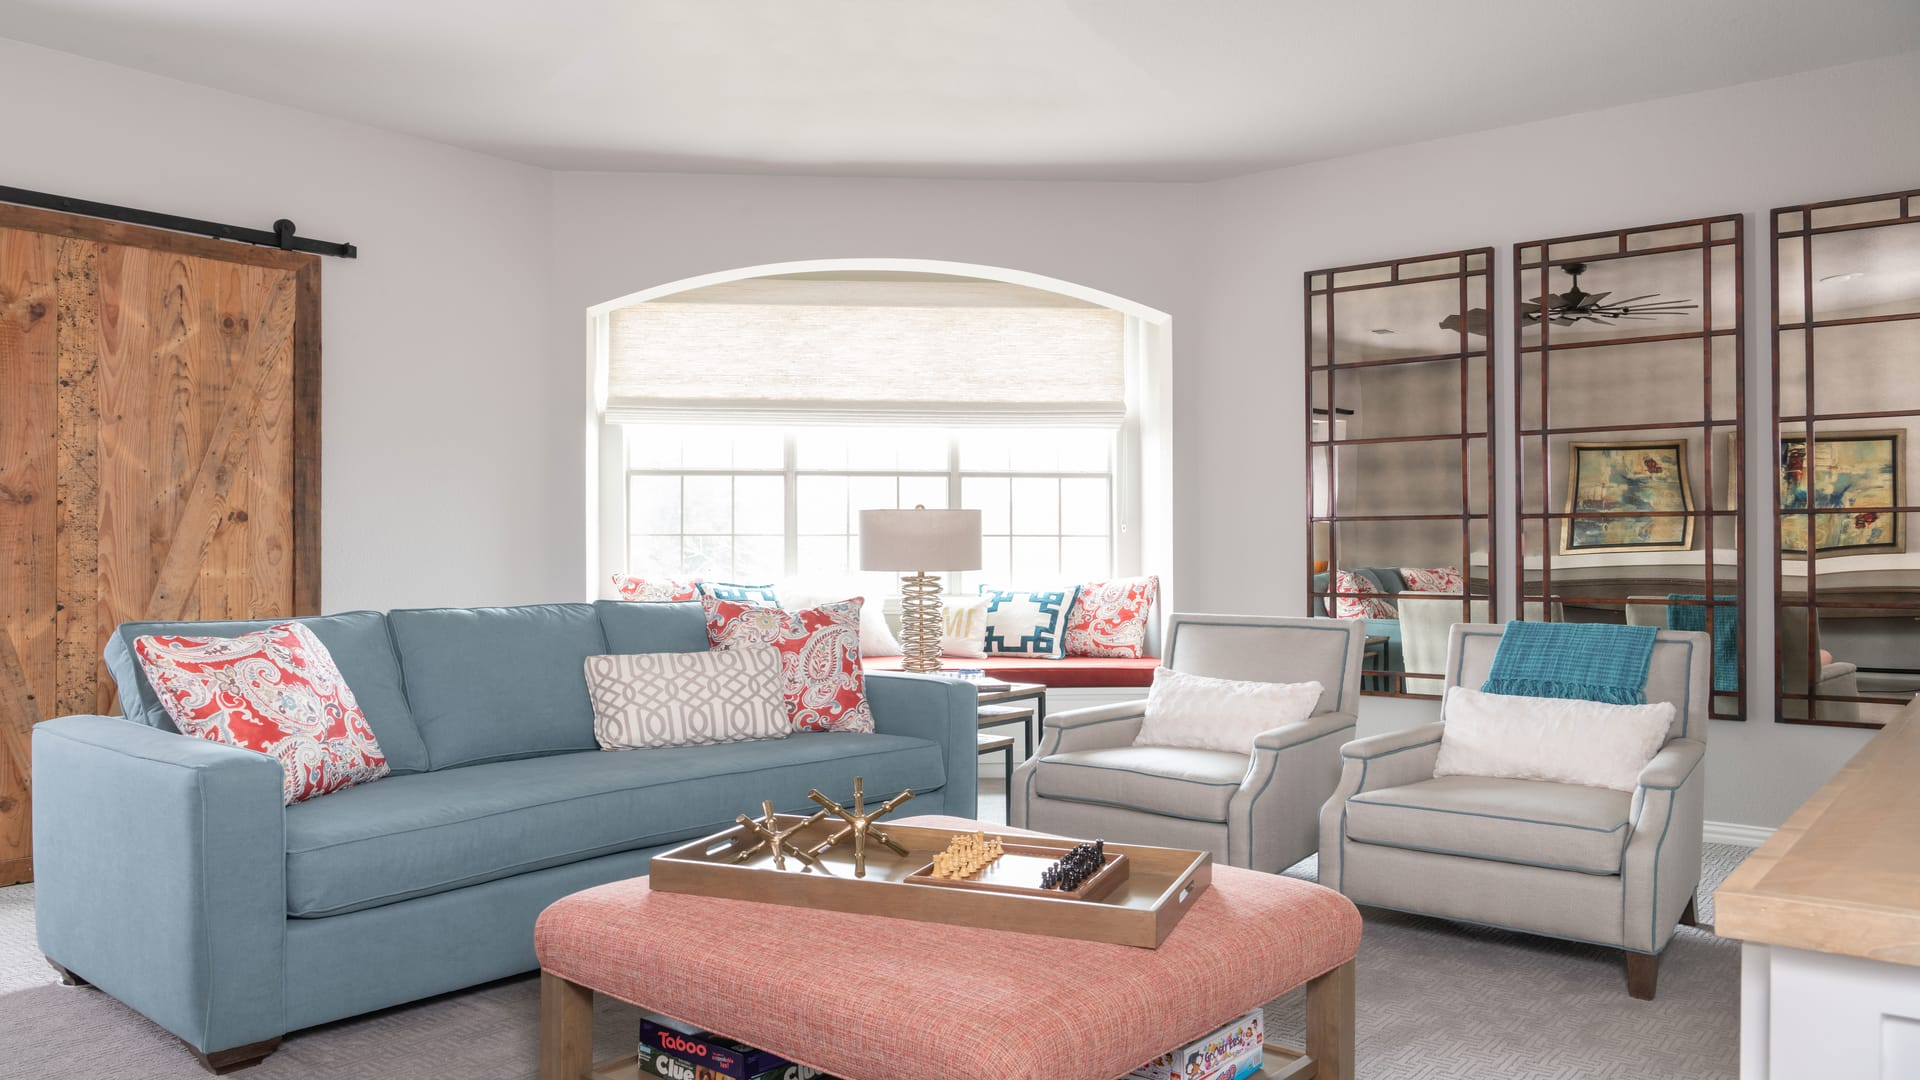 Playing Games | Game Room Ideas From Dallas TX Interior Designer 1 - Dallas Interior Designer serving Plano, Frisco, Dallas, Allen for Decorating Den Interiors D'KOR HOME by Dee Frazier Interiors